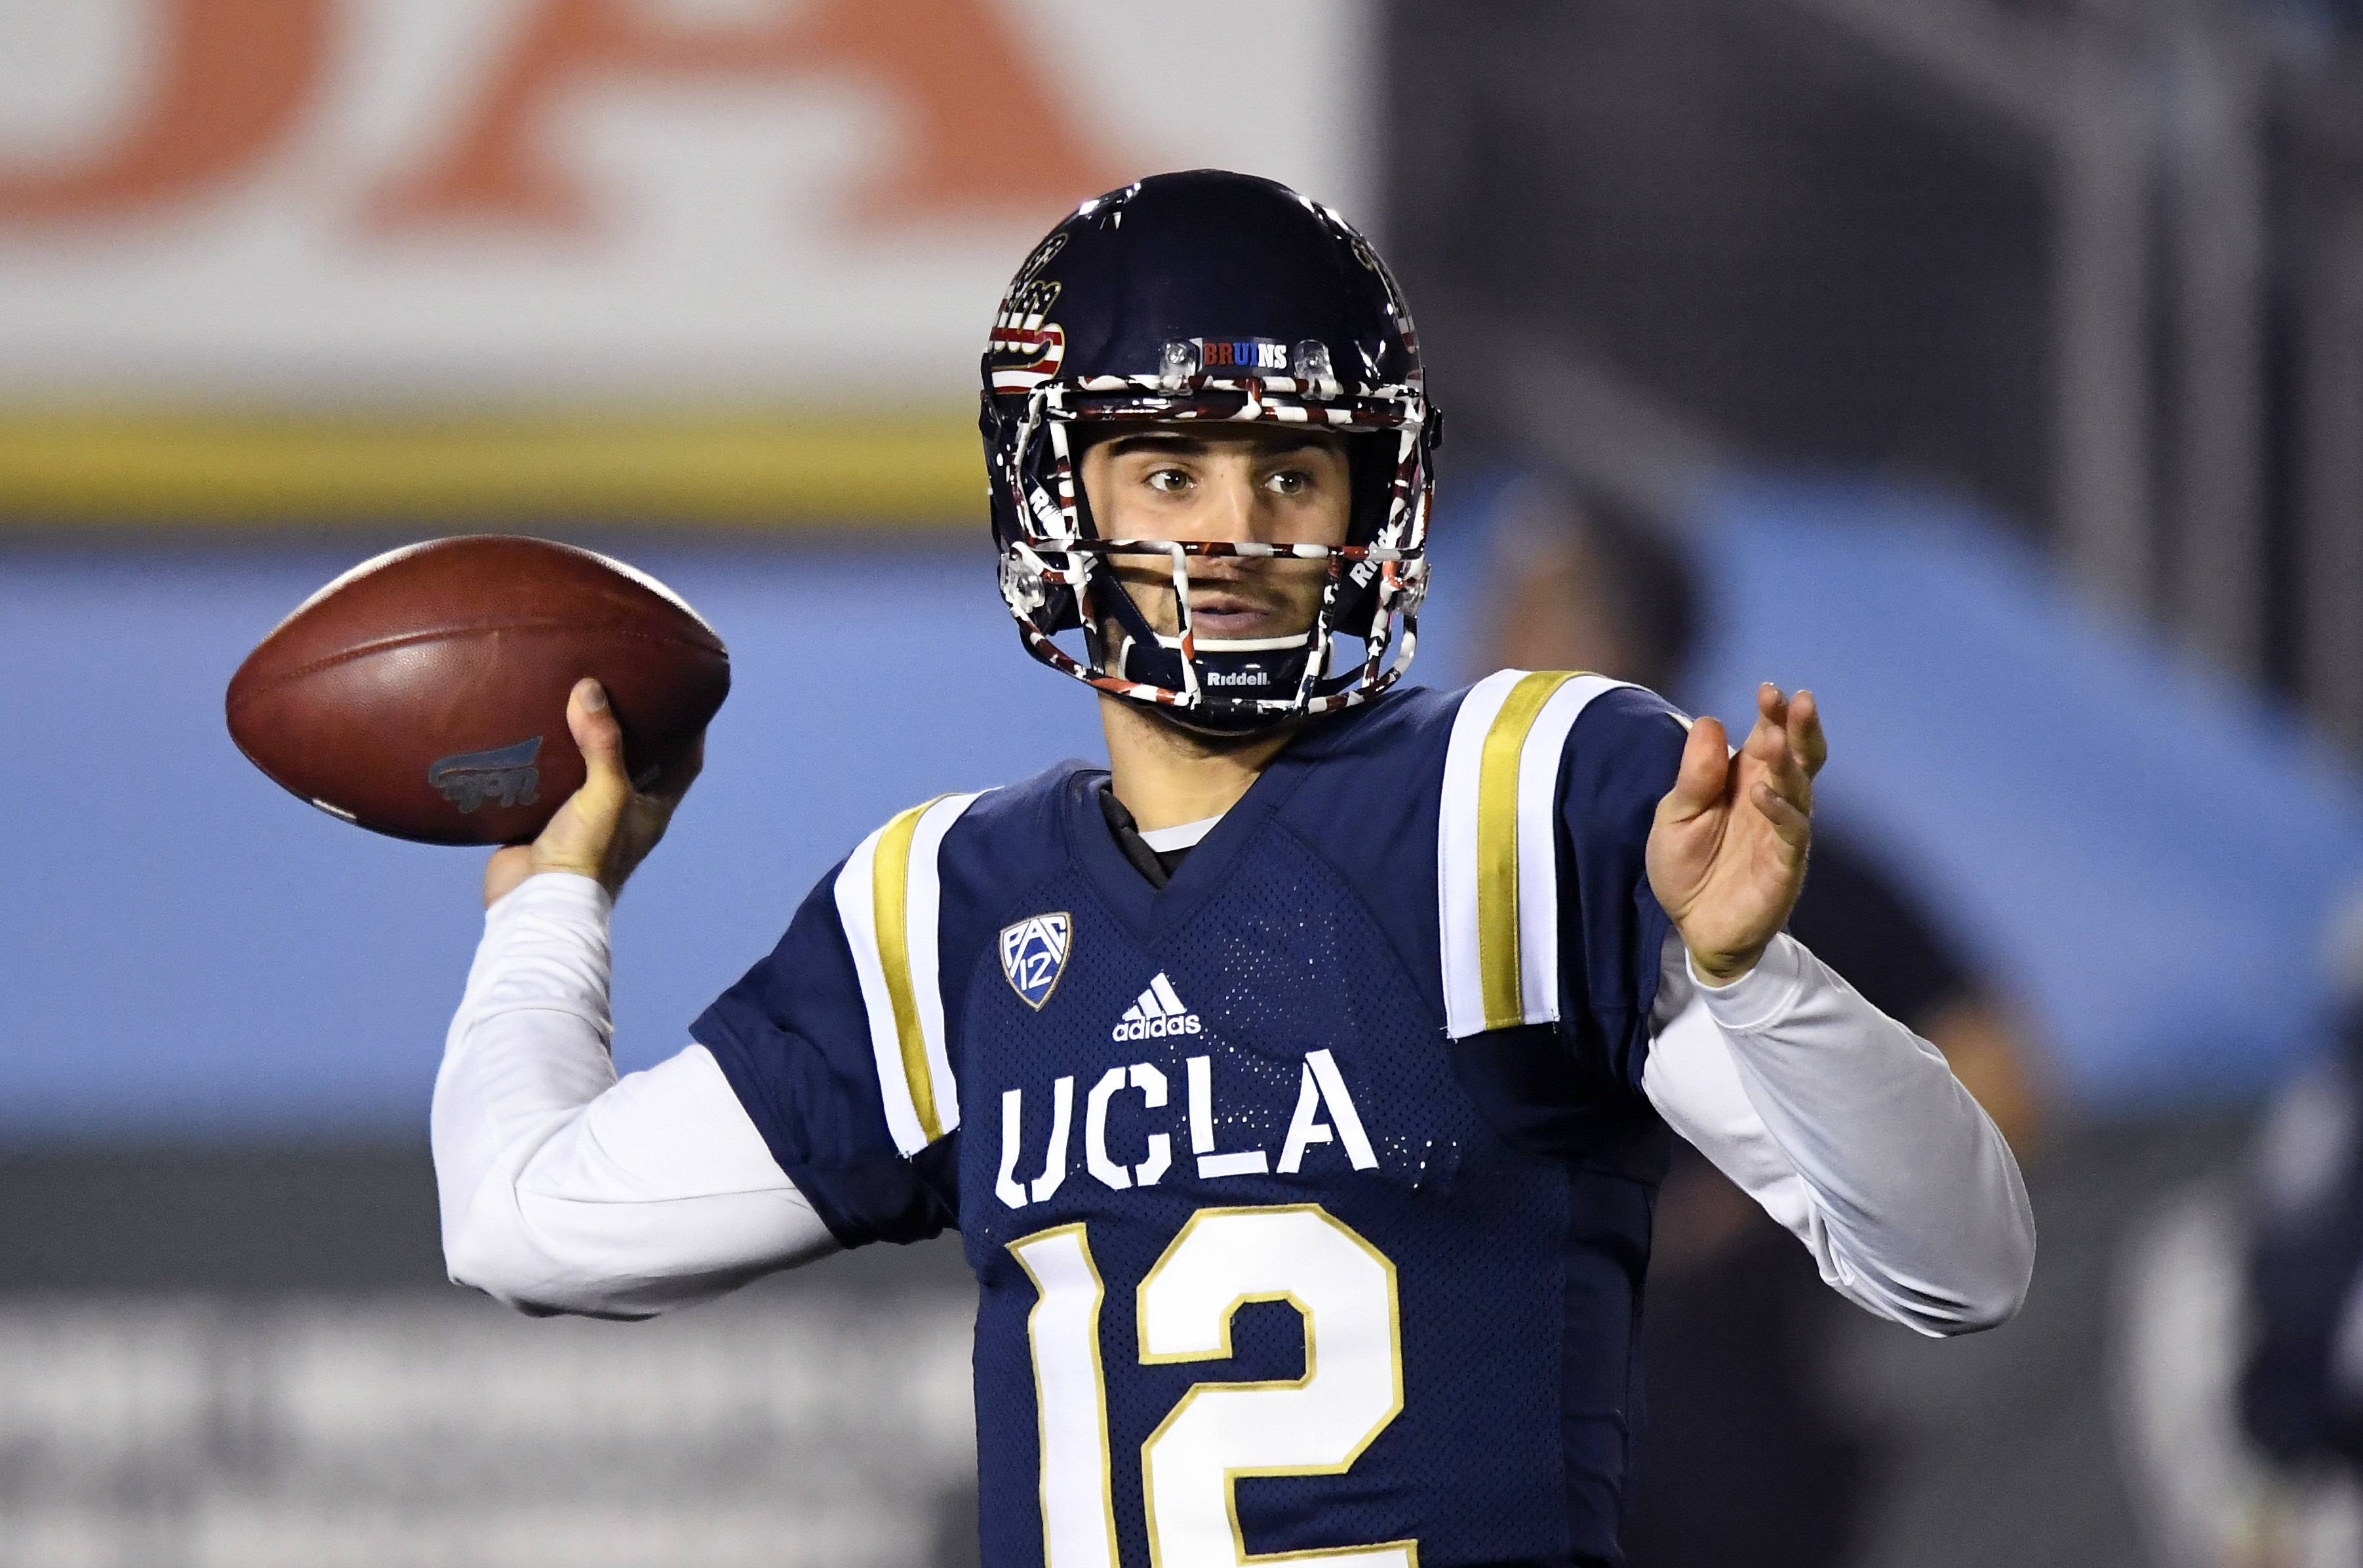 FILE - In this Saturday, Nov. 12, 2016 file photo, UCLA quarterback Mike Fafaul passes during the first half of an NCAA college football game against Oregon State in Pasadena, Calif. Every team has one of them: A player who hasn't gotten much attention fr